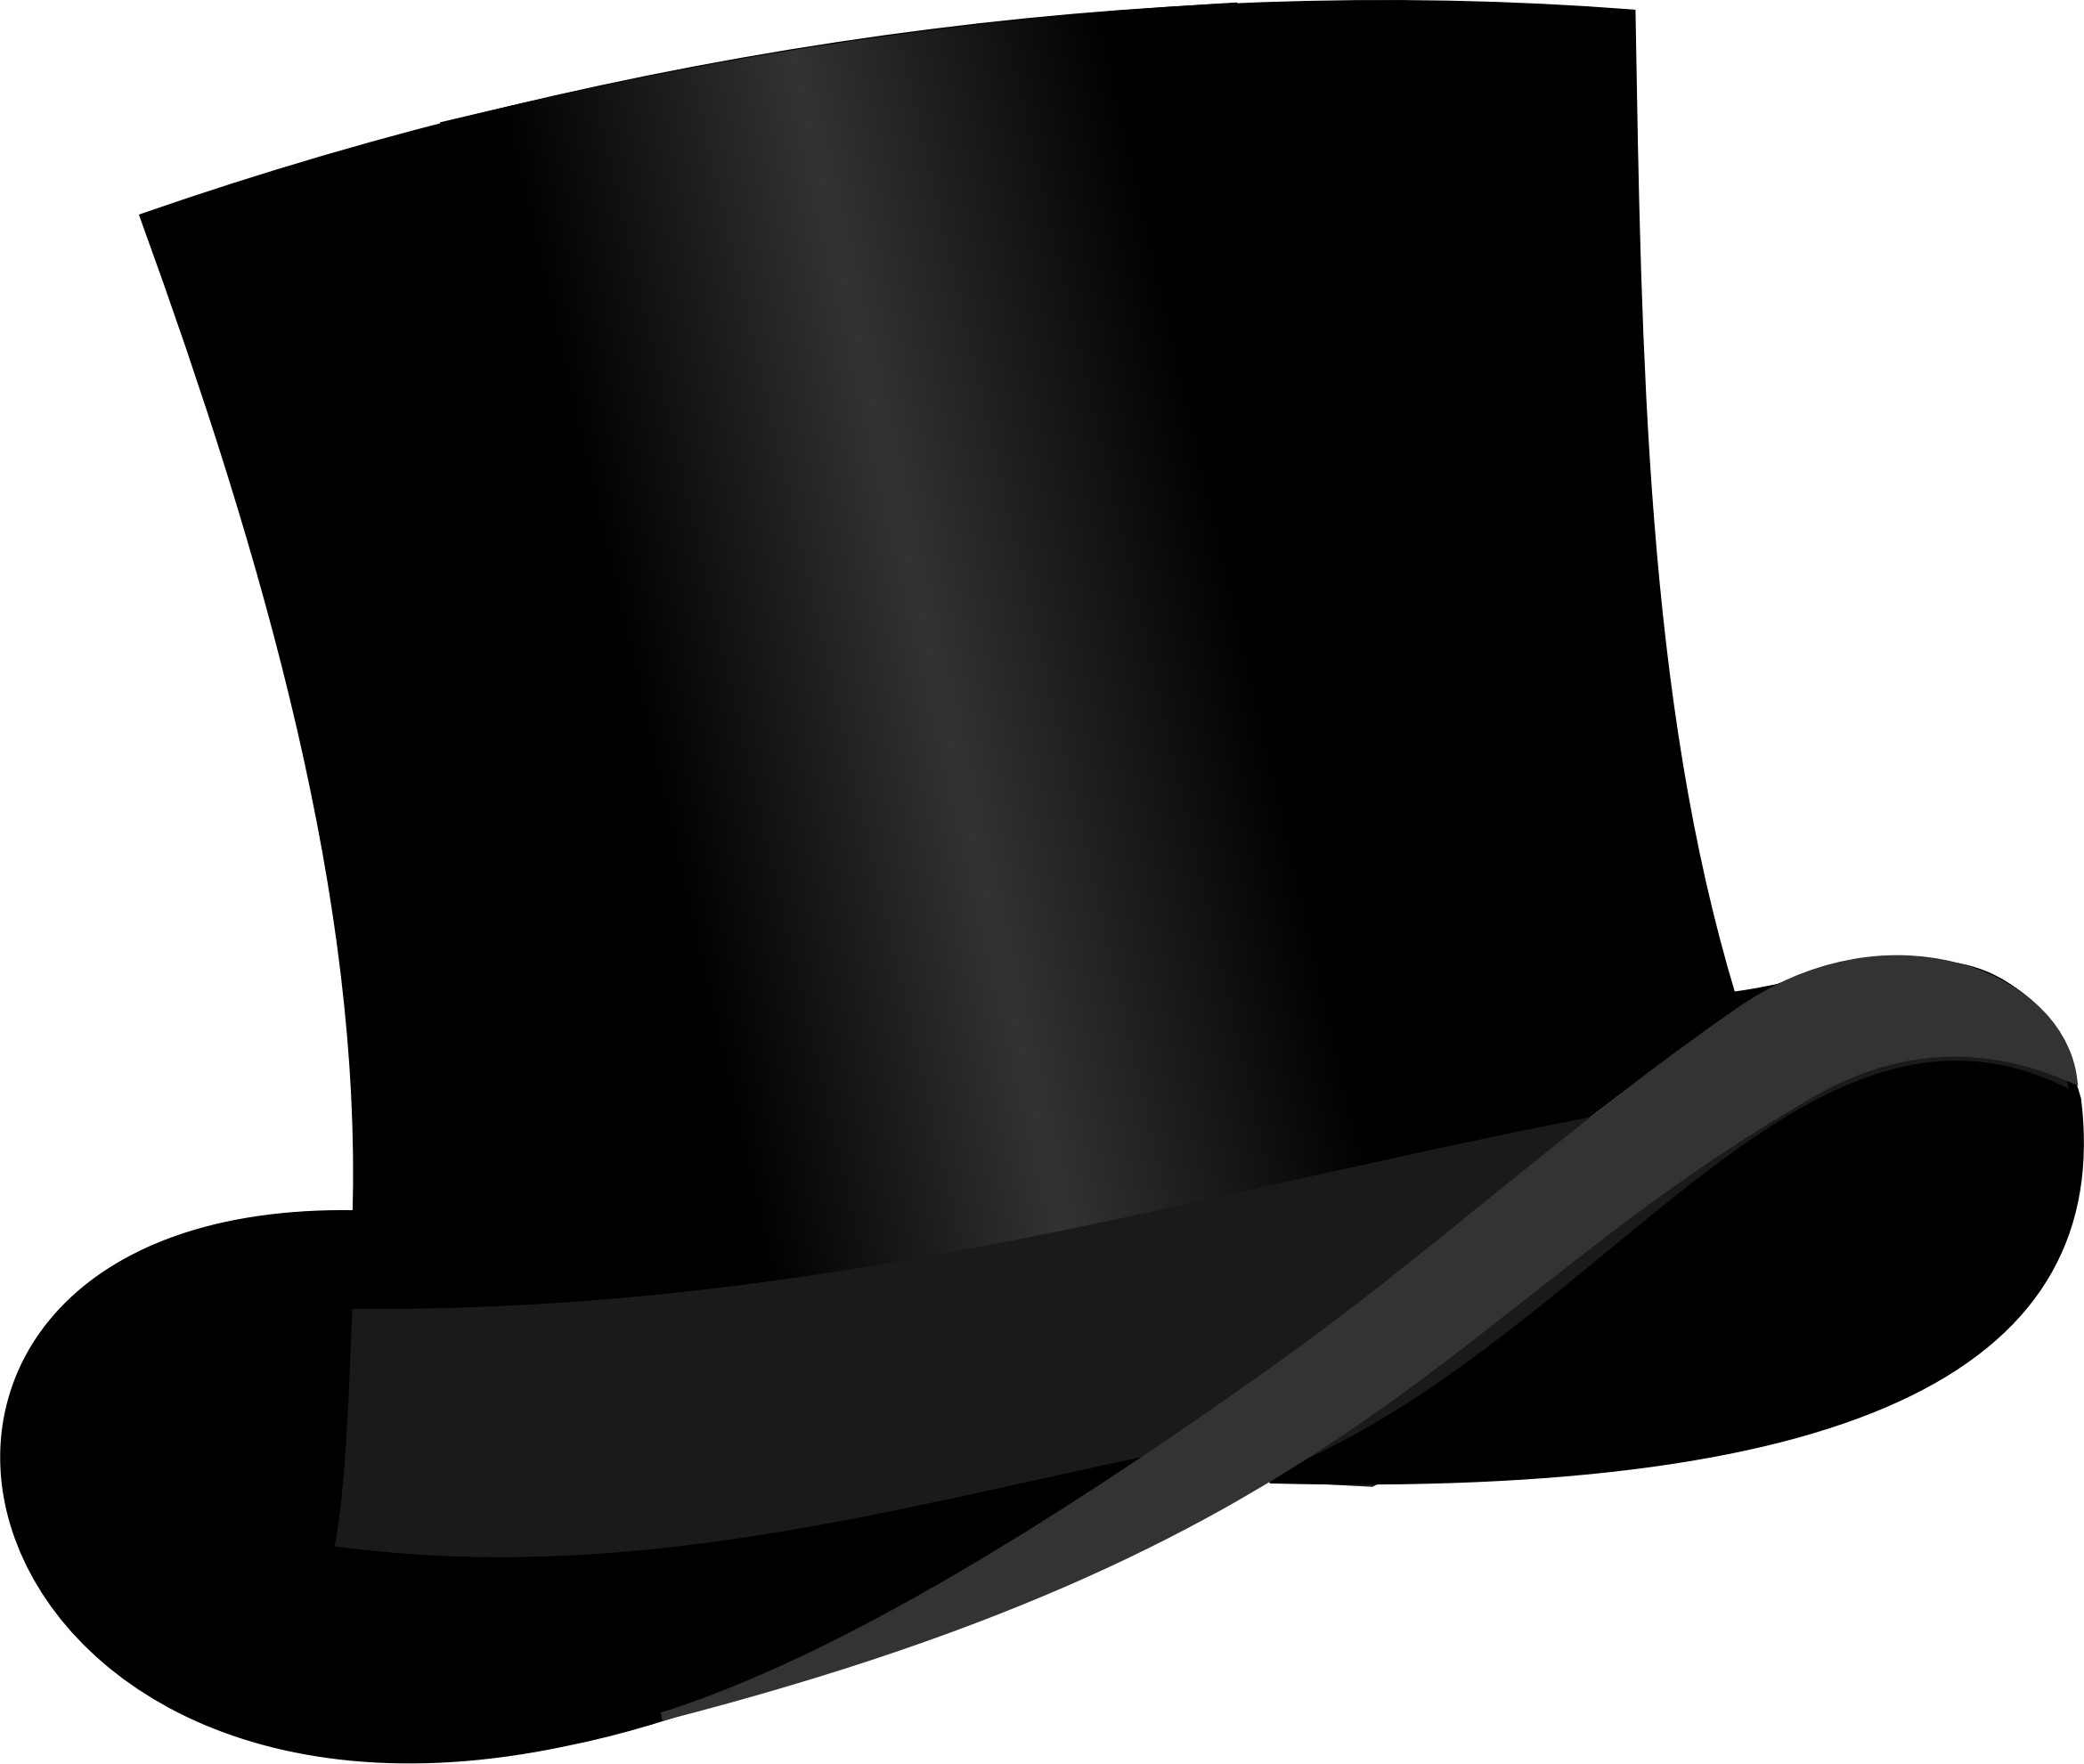 Bowler hat silhouette at. Moustache clipart pirate accessory